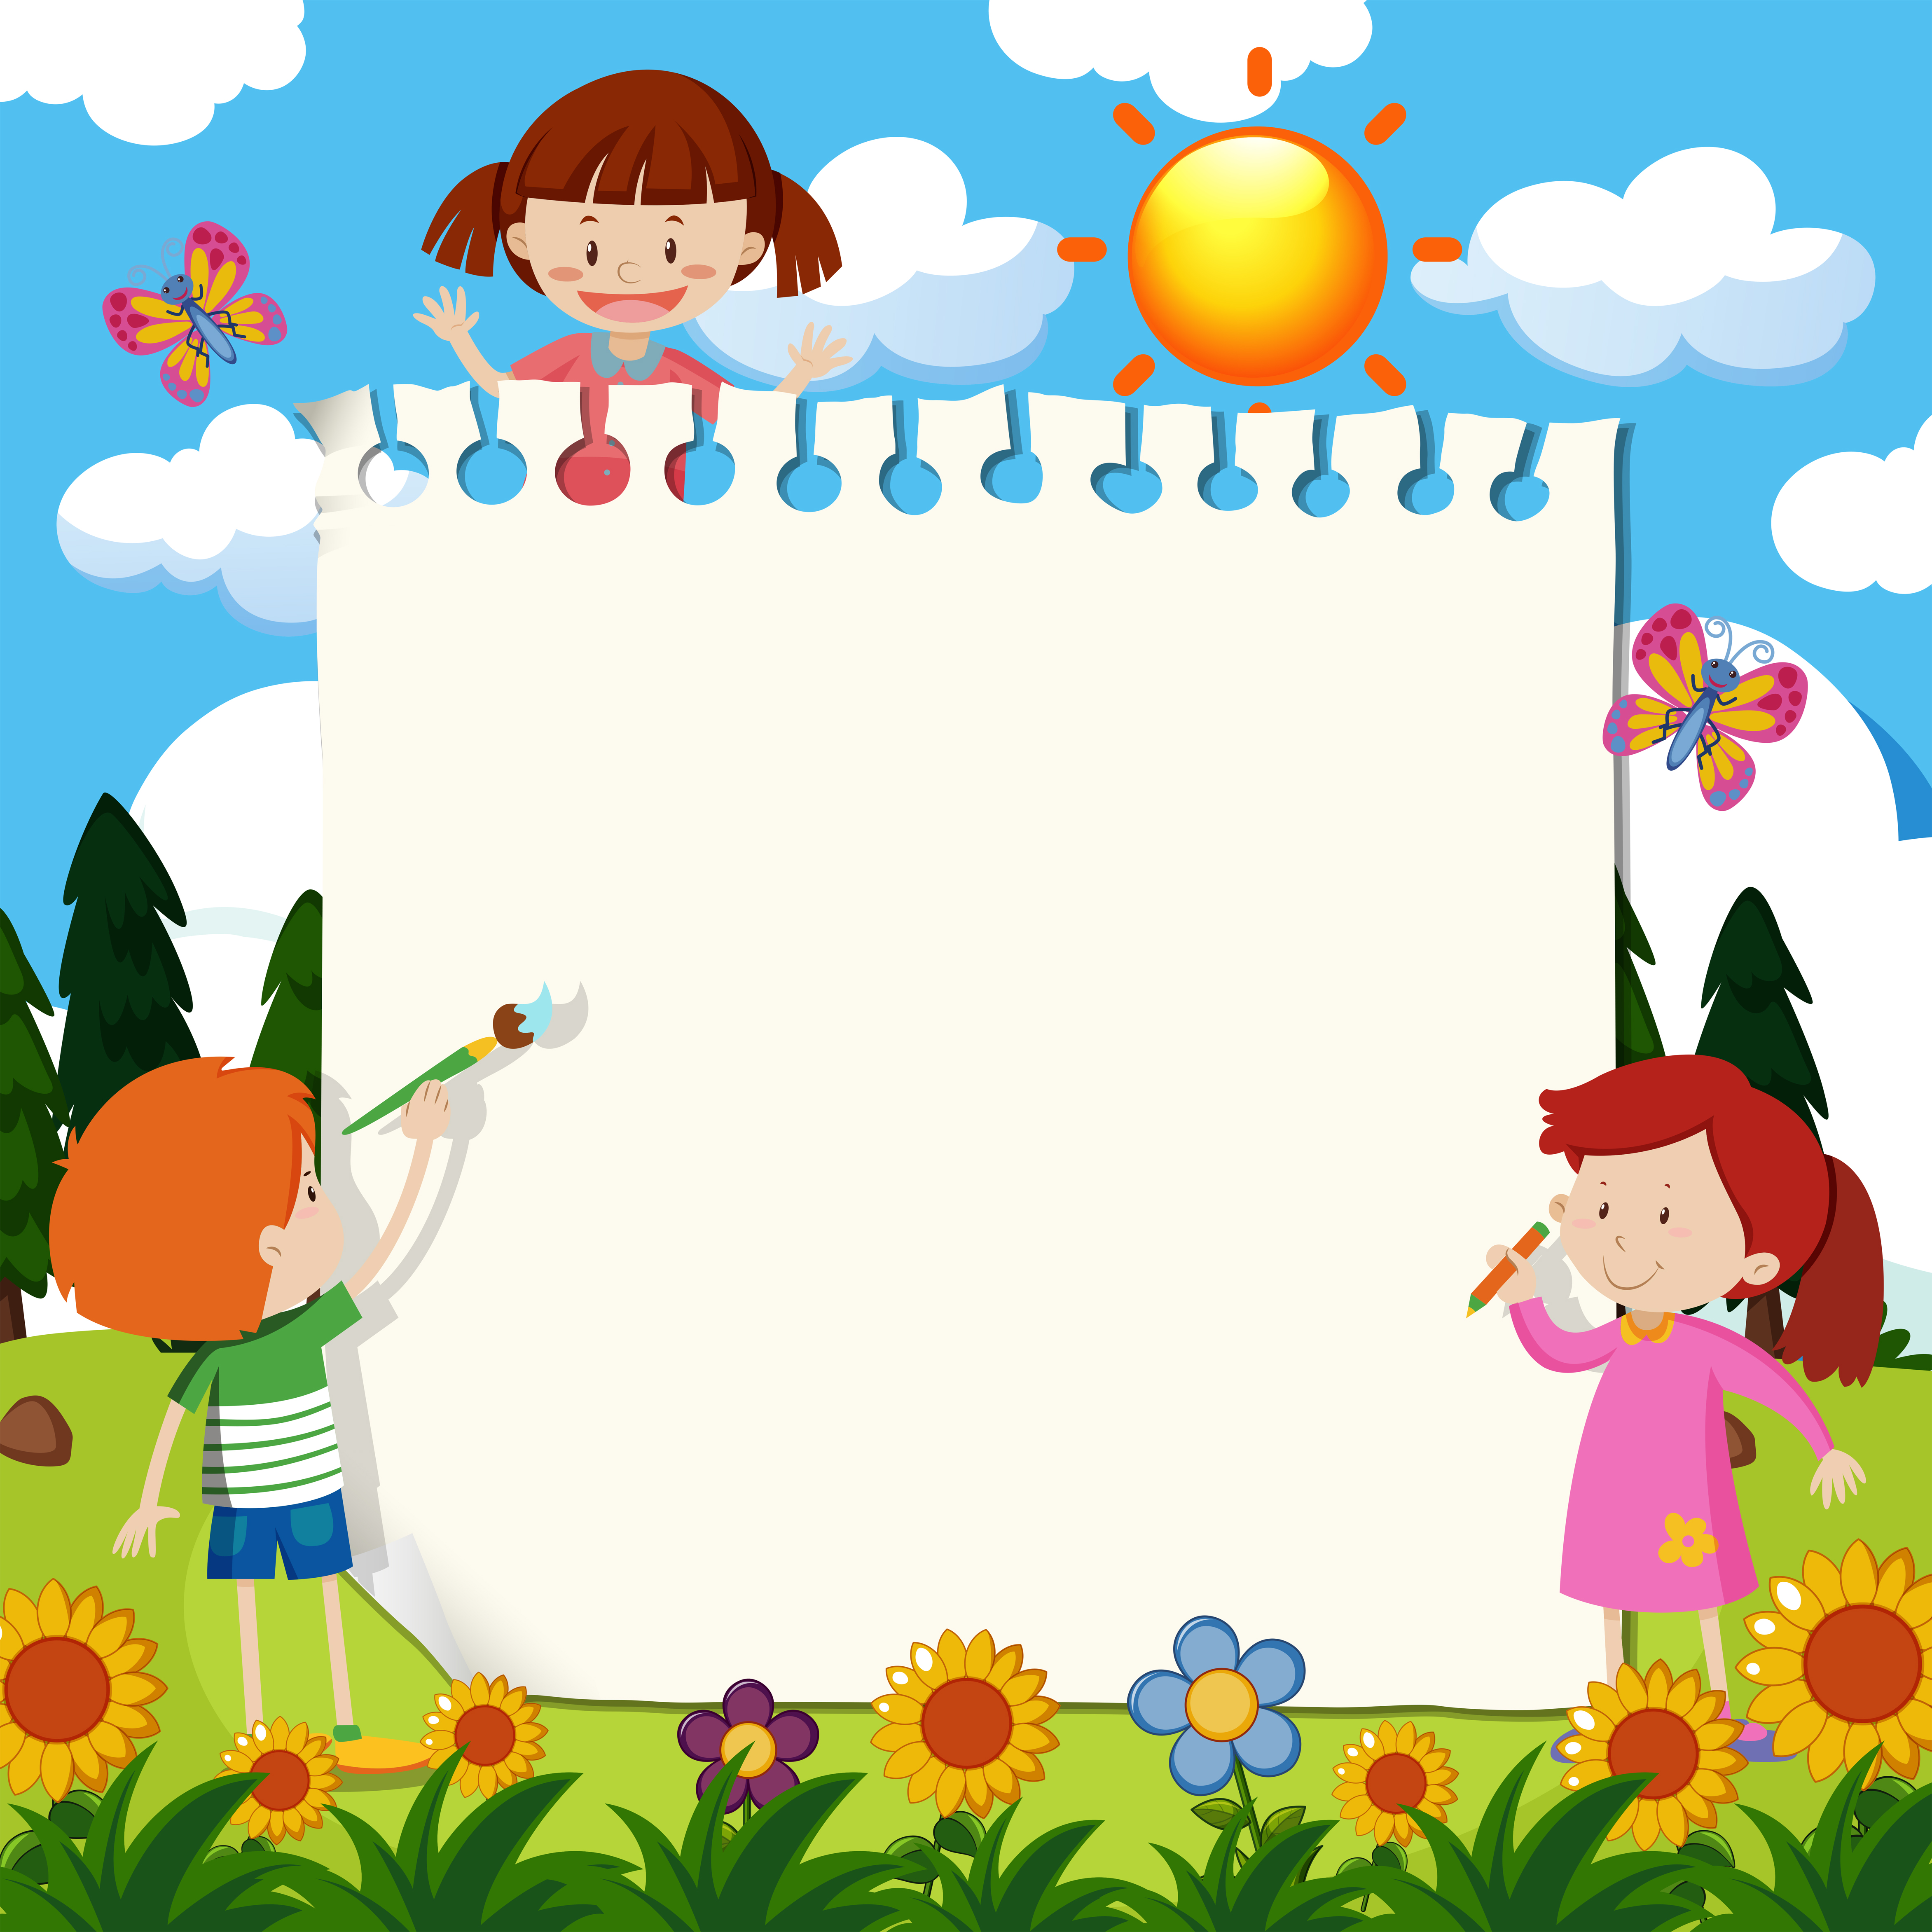 Paper Note with Children in Garden - Download Free Vector ...